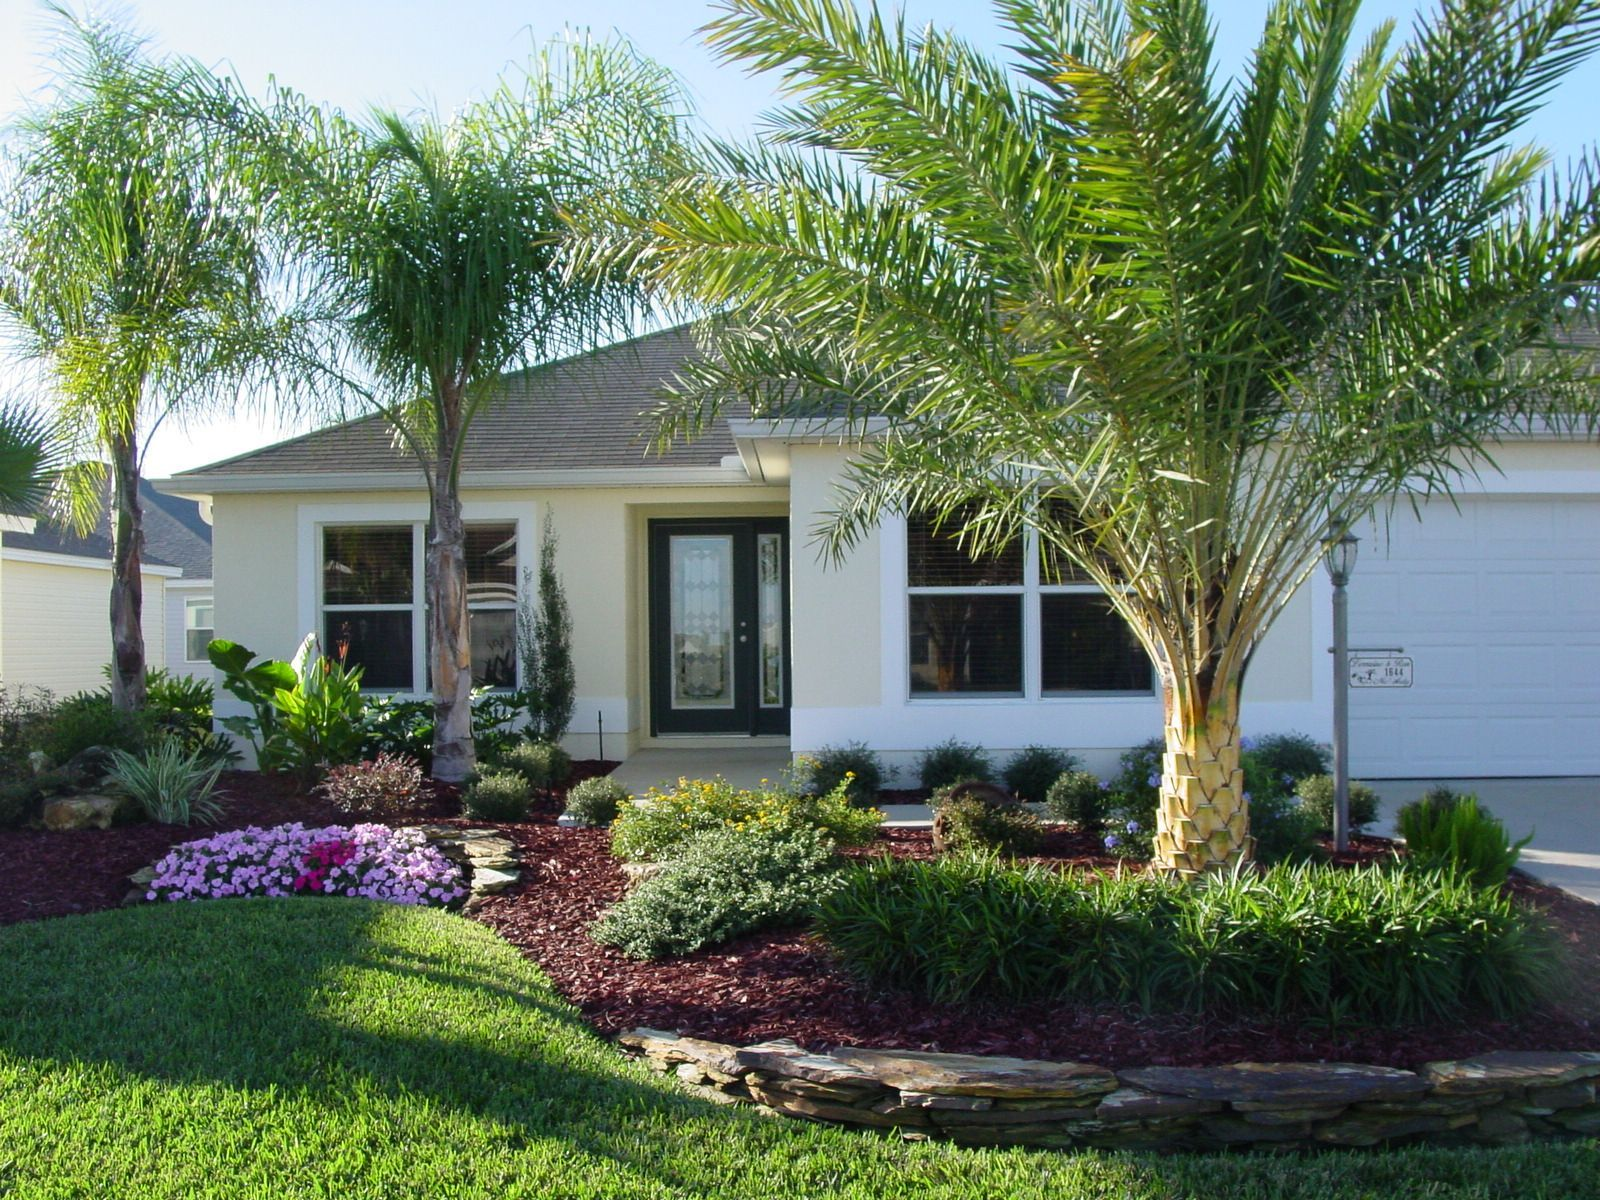 Florida Homes Landscape 50 Best Florida Luxury Houses Page 51 Of 100 Small Front Yard Landscaping Florida Landscaping Farmhouse Landscaping